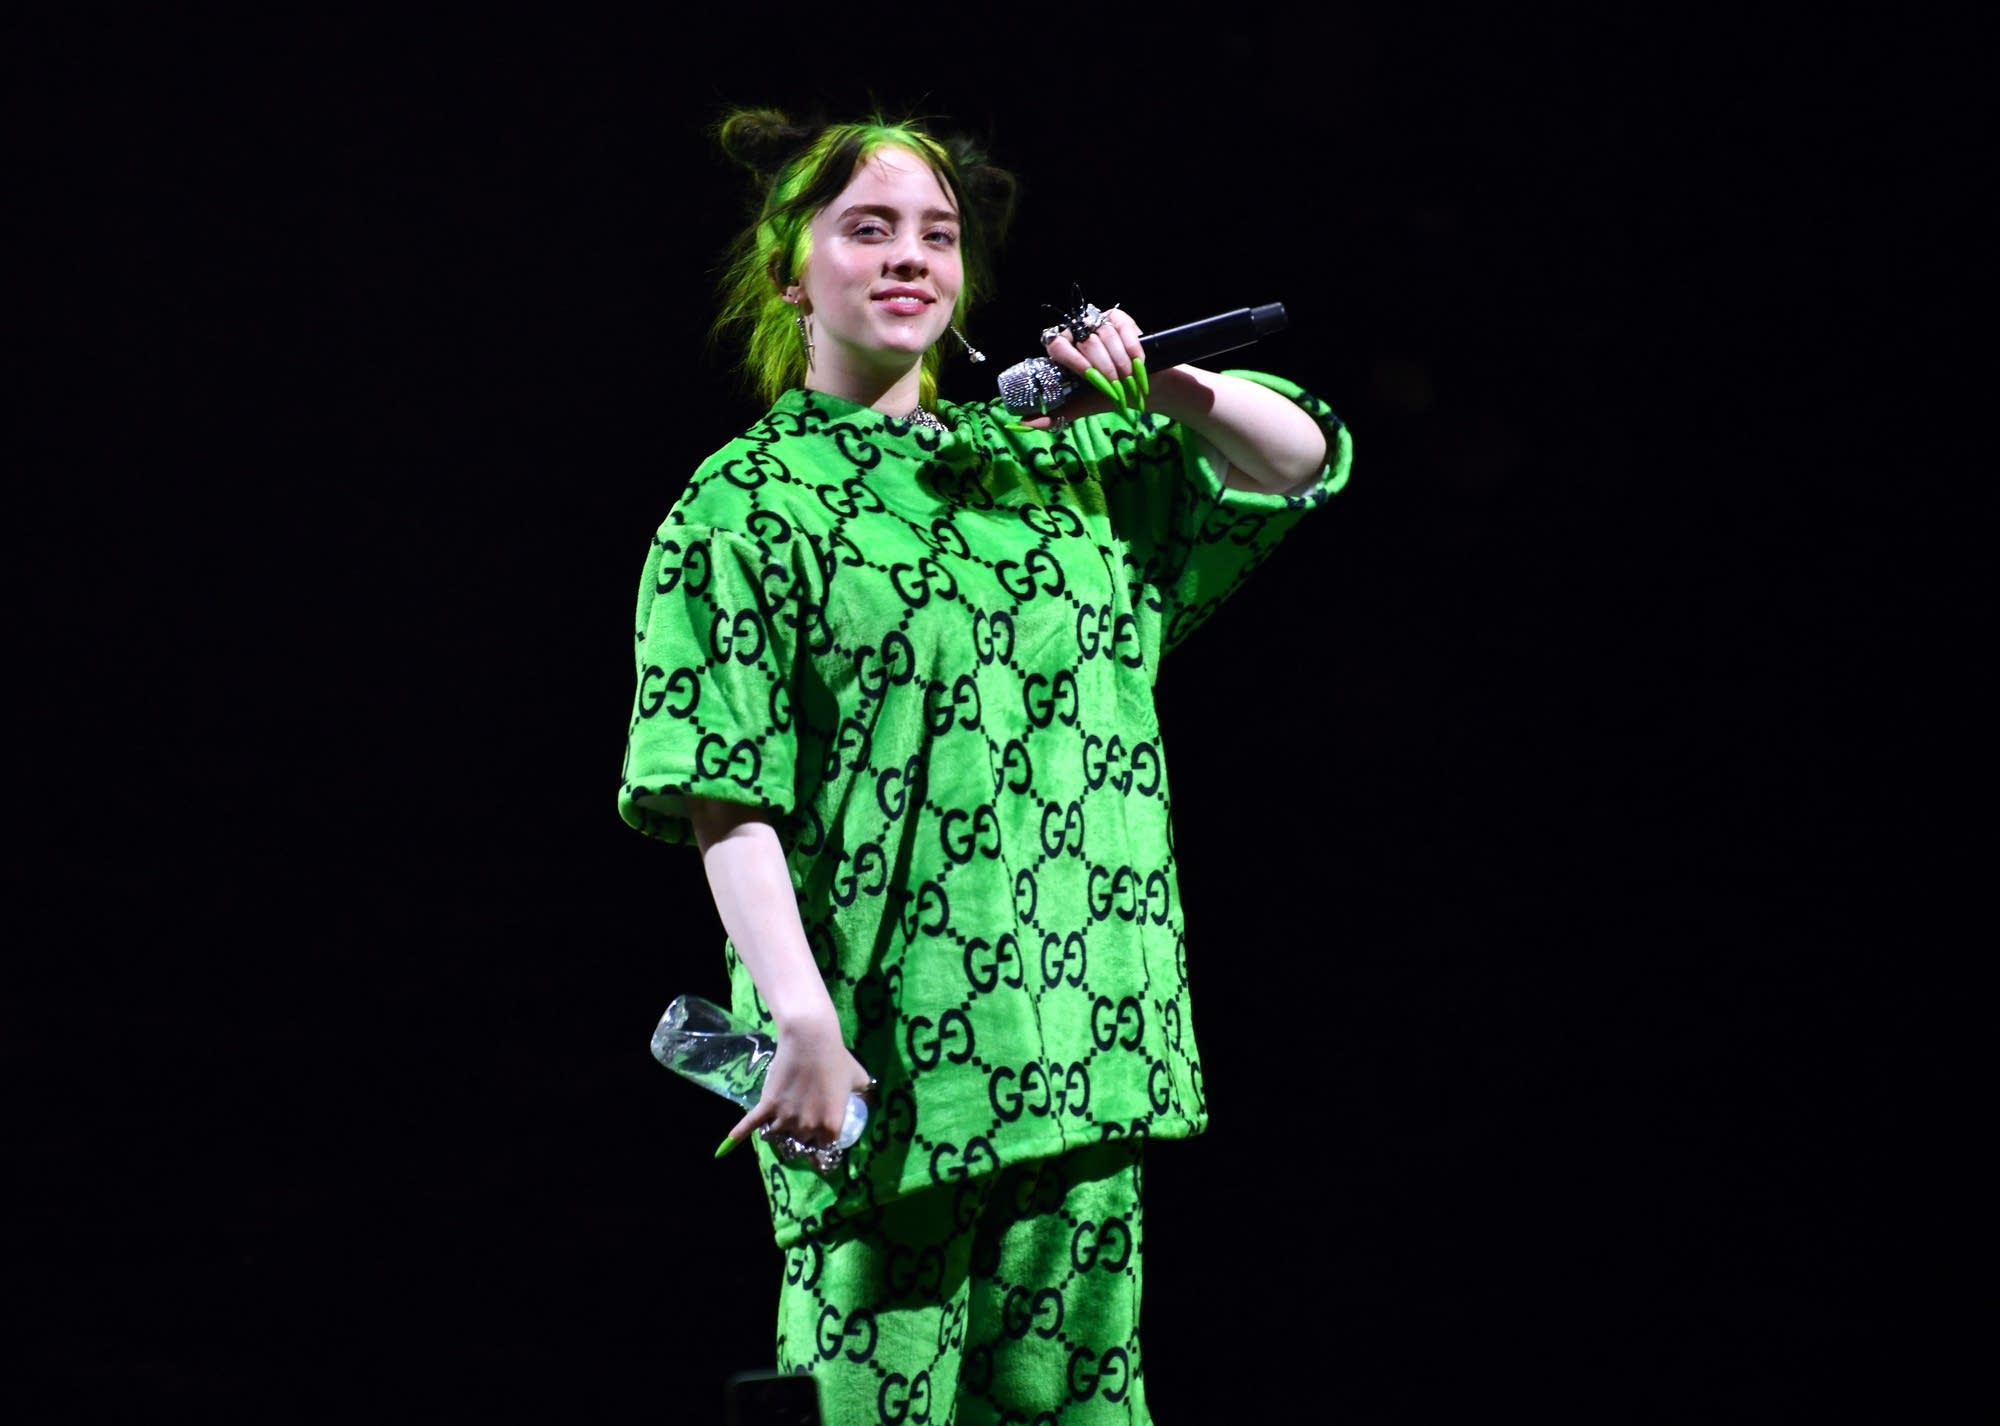 Billie Eilish performing in Los Angeles